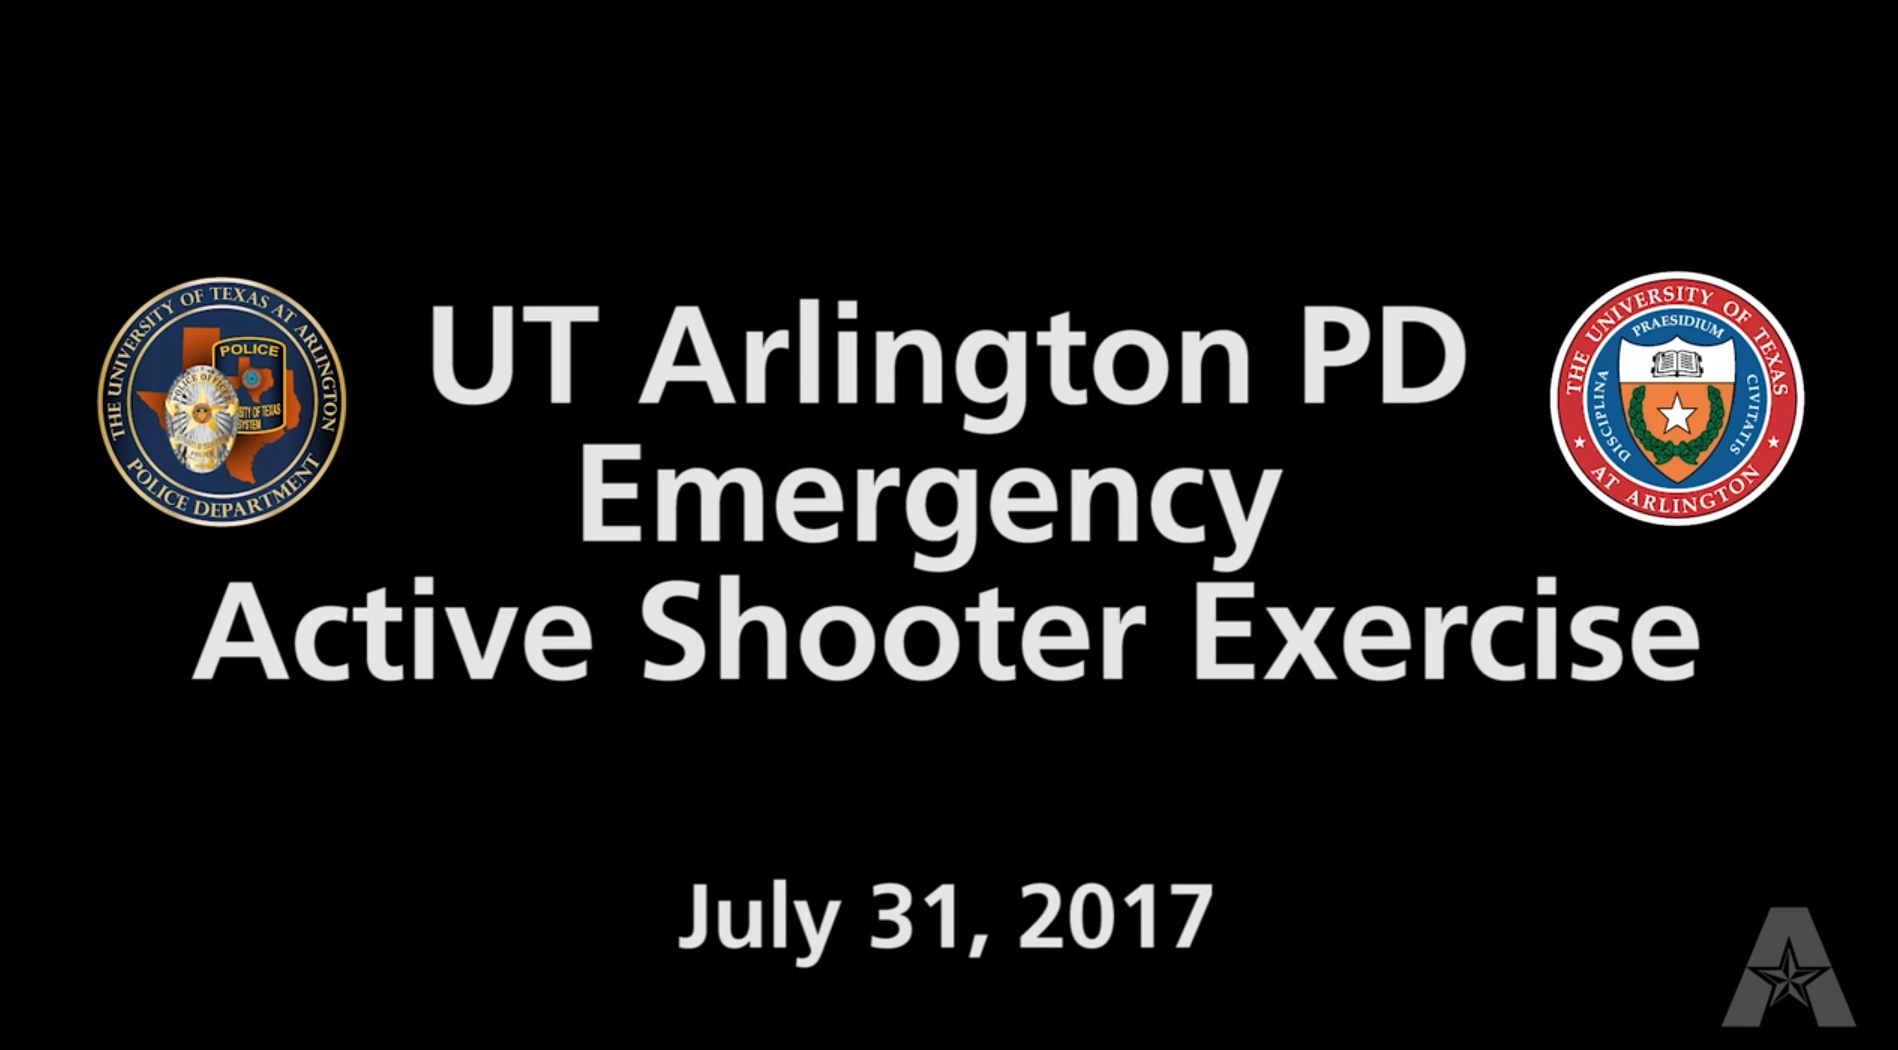 Active Shooter Video Image